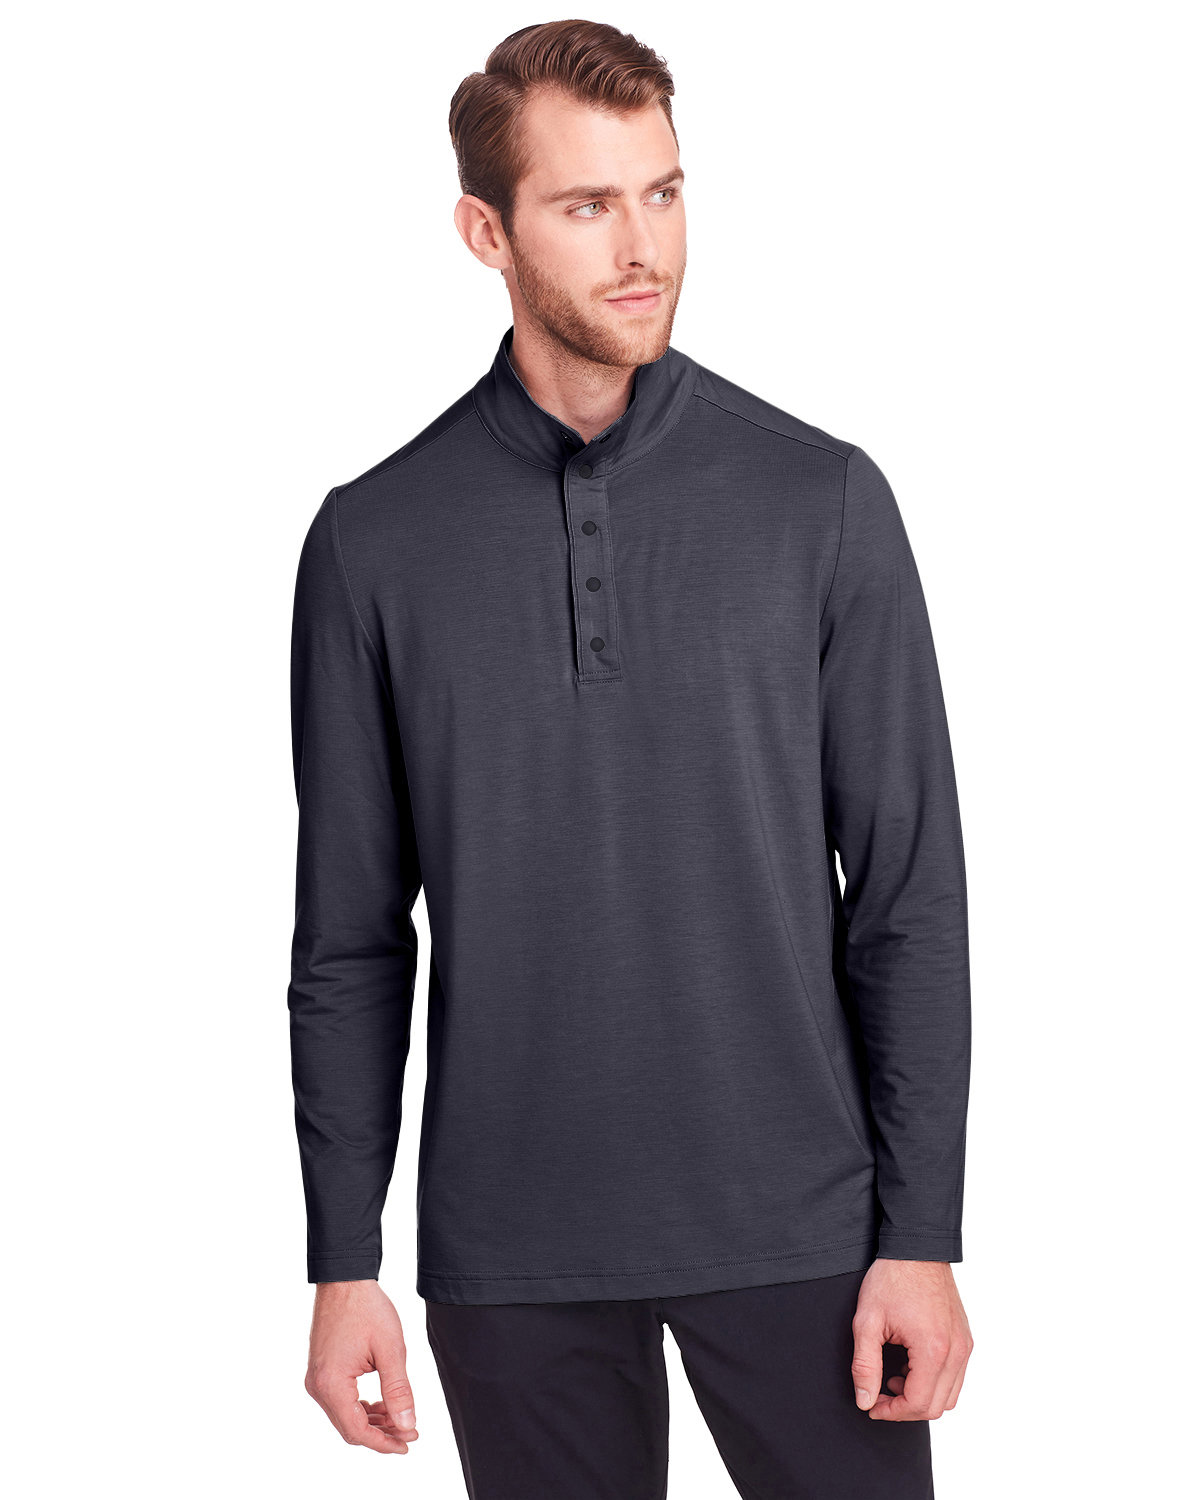 North End Men's Jaq Snap-Up Stretch Performance Pullover CARBON